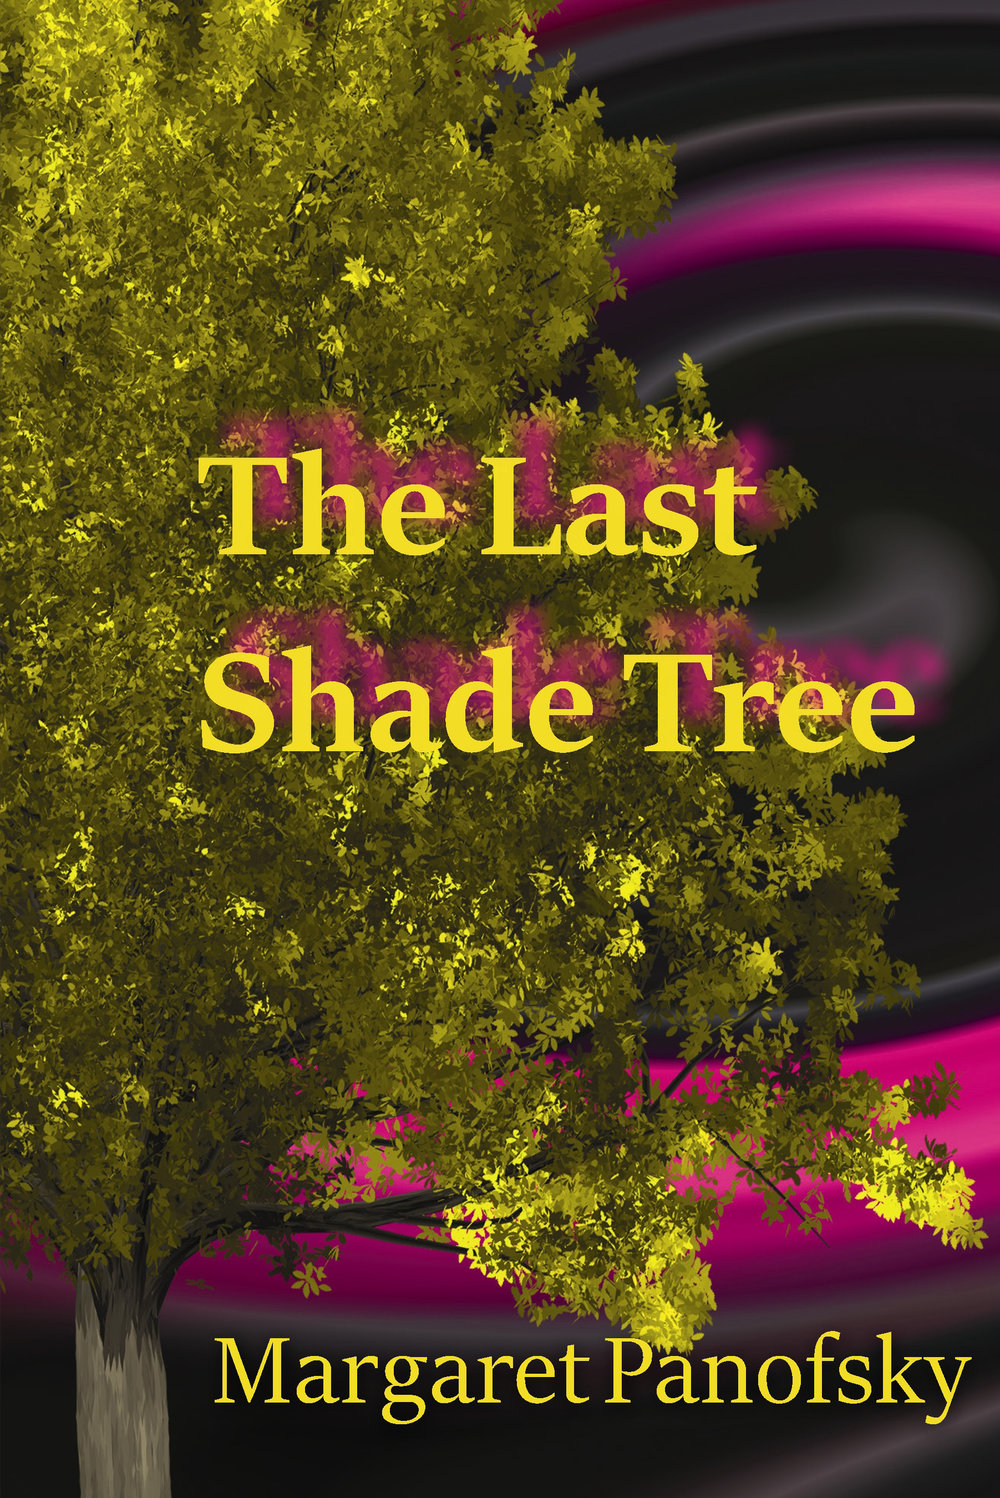 Cover of The Last Shade Tree novel by Margaret Panofsky